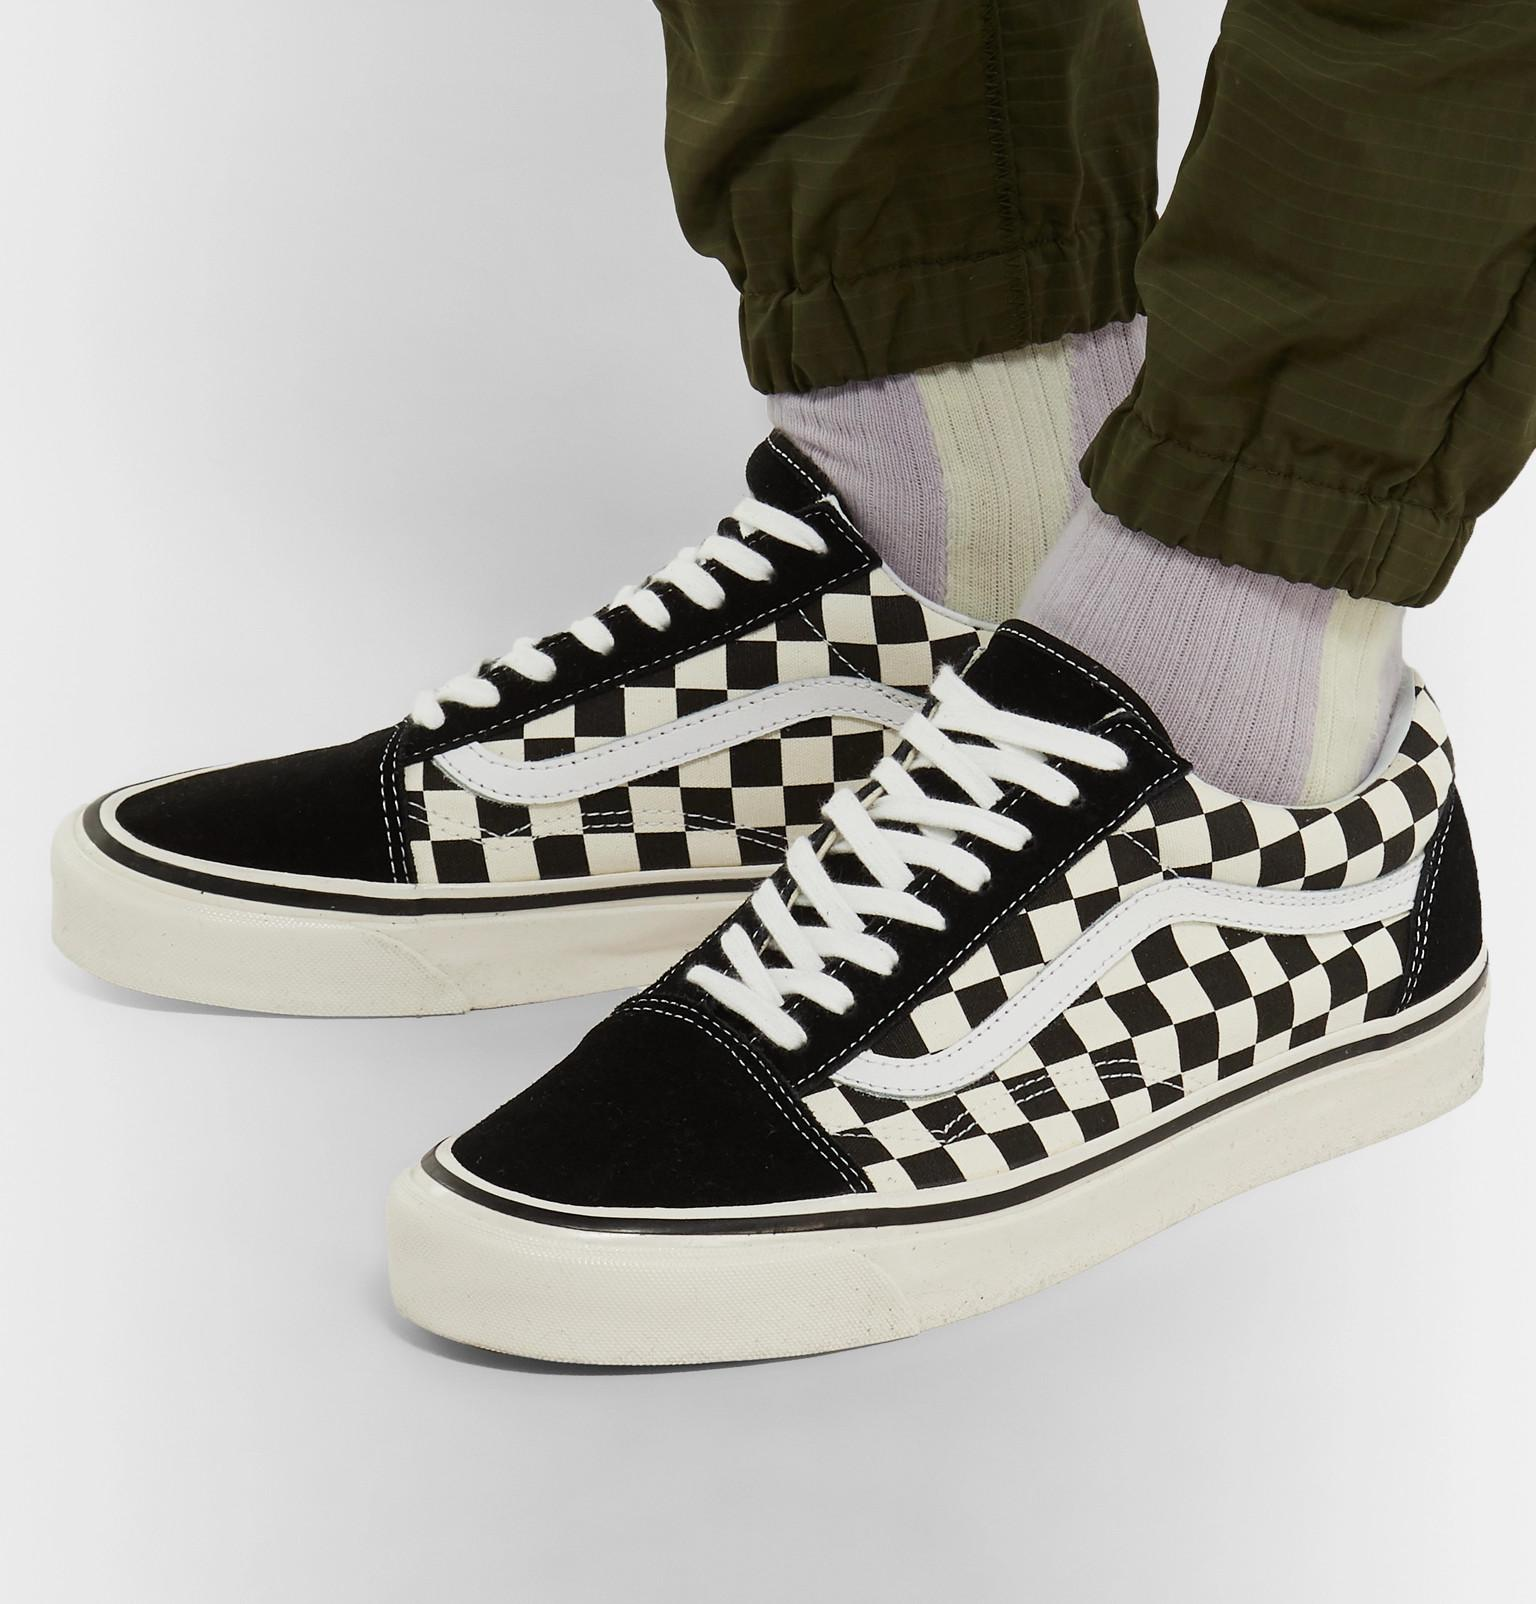 333a0497d88 Vans - Black Anaheim Factory Old Skool 36 Dx Leather-trimmed Checkerboard  Canvas And Suede. View fullscreen